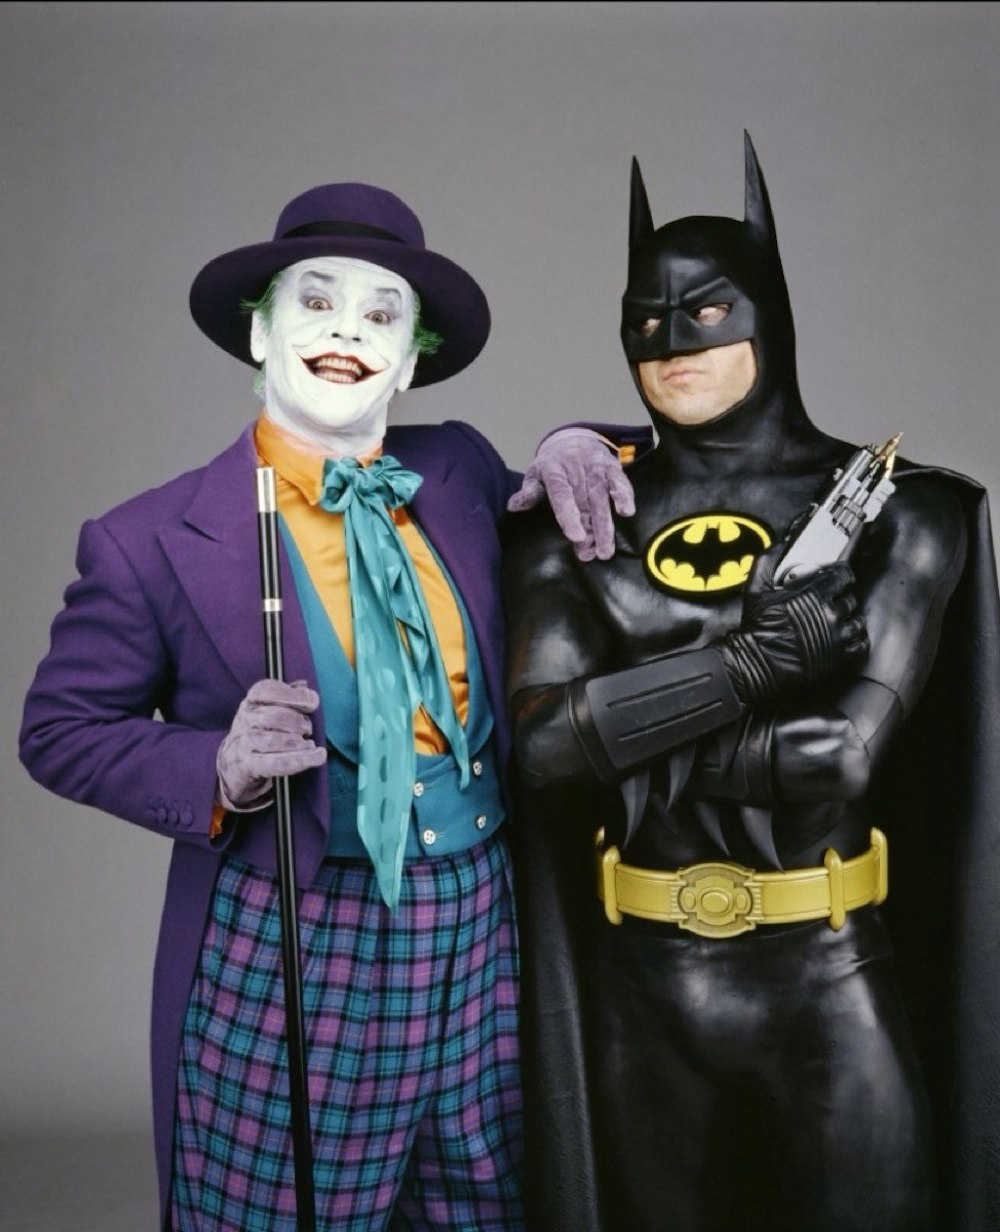 10 Facts You Might Not Know About Tim Burton's Batman